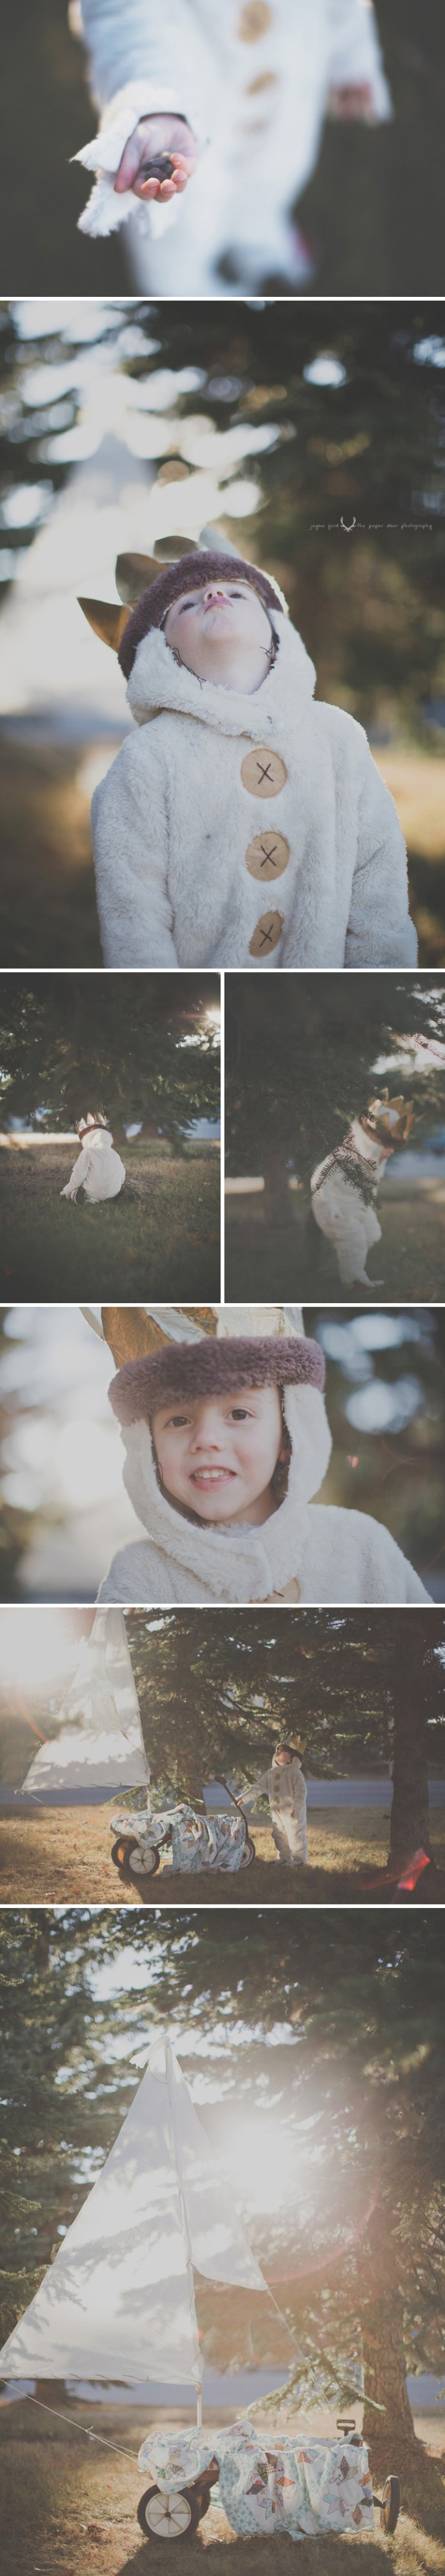 where the wild things are ➾ halloween ➾ ©The Paper Deer Photography ➾ paperdeerphoto.com/blog